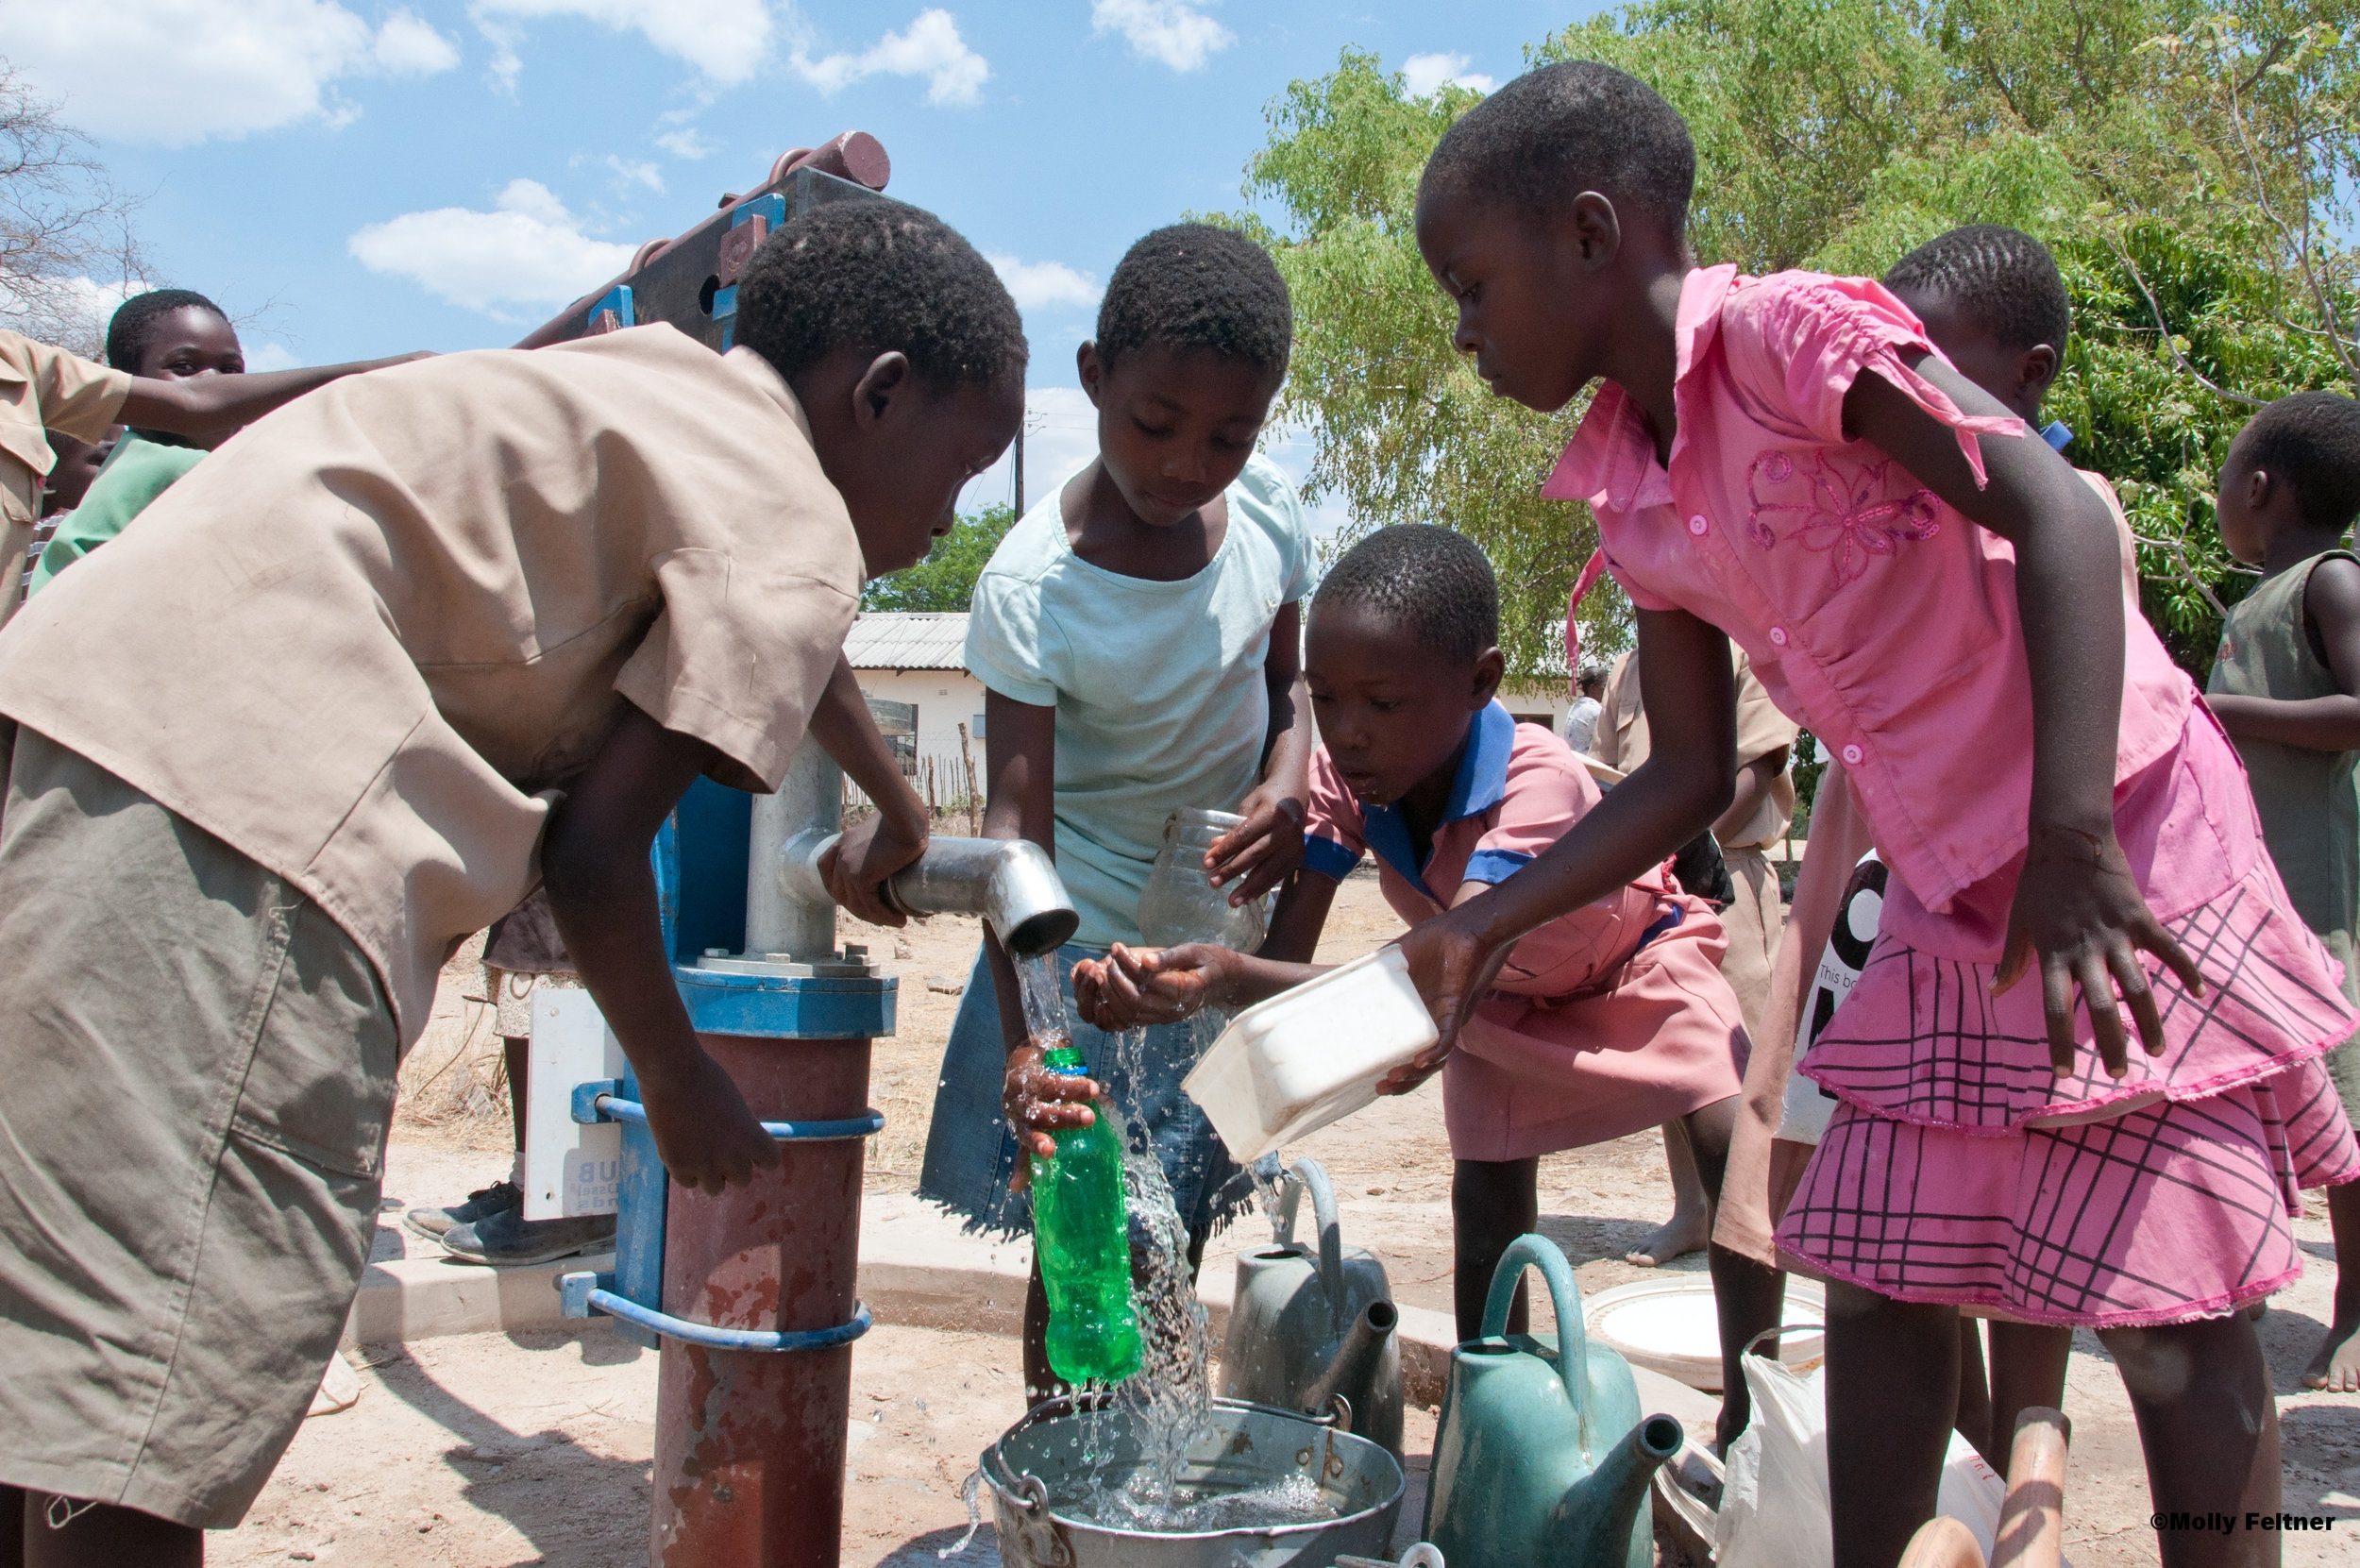 Water is life and we give it. Kids enjoying the rare, at least before in their community, and precious water from a borehole drilled by PDC.